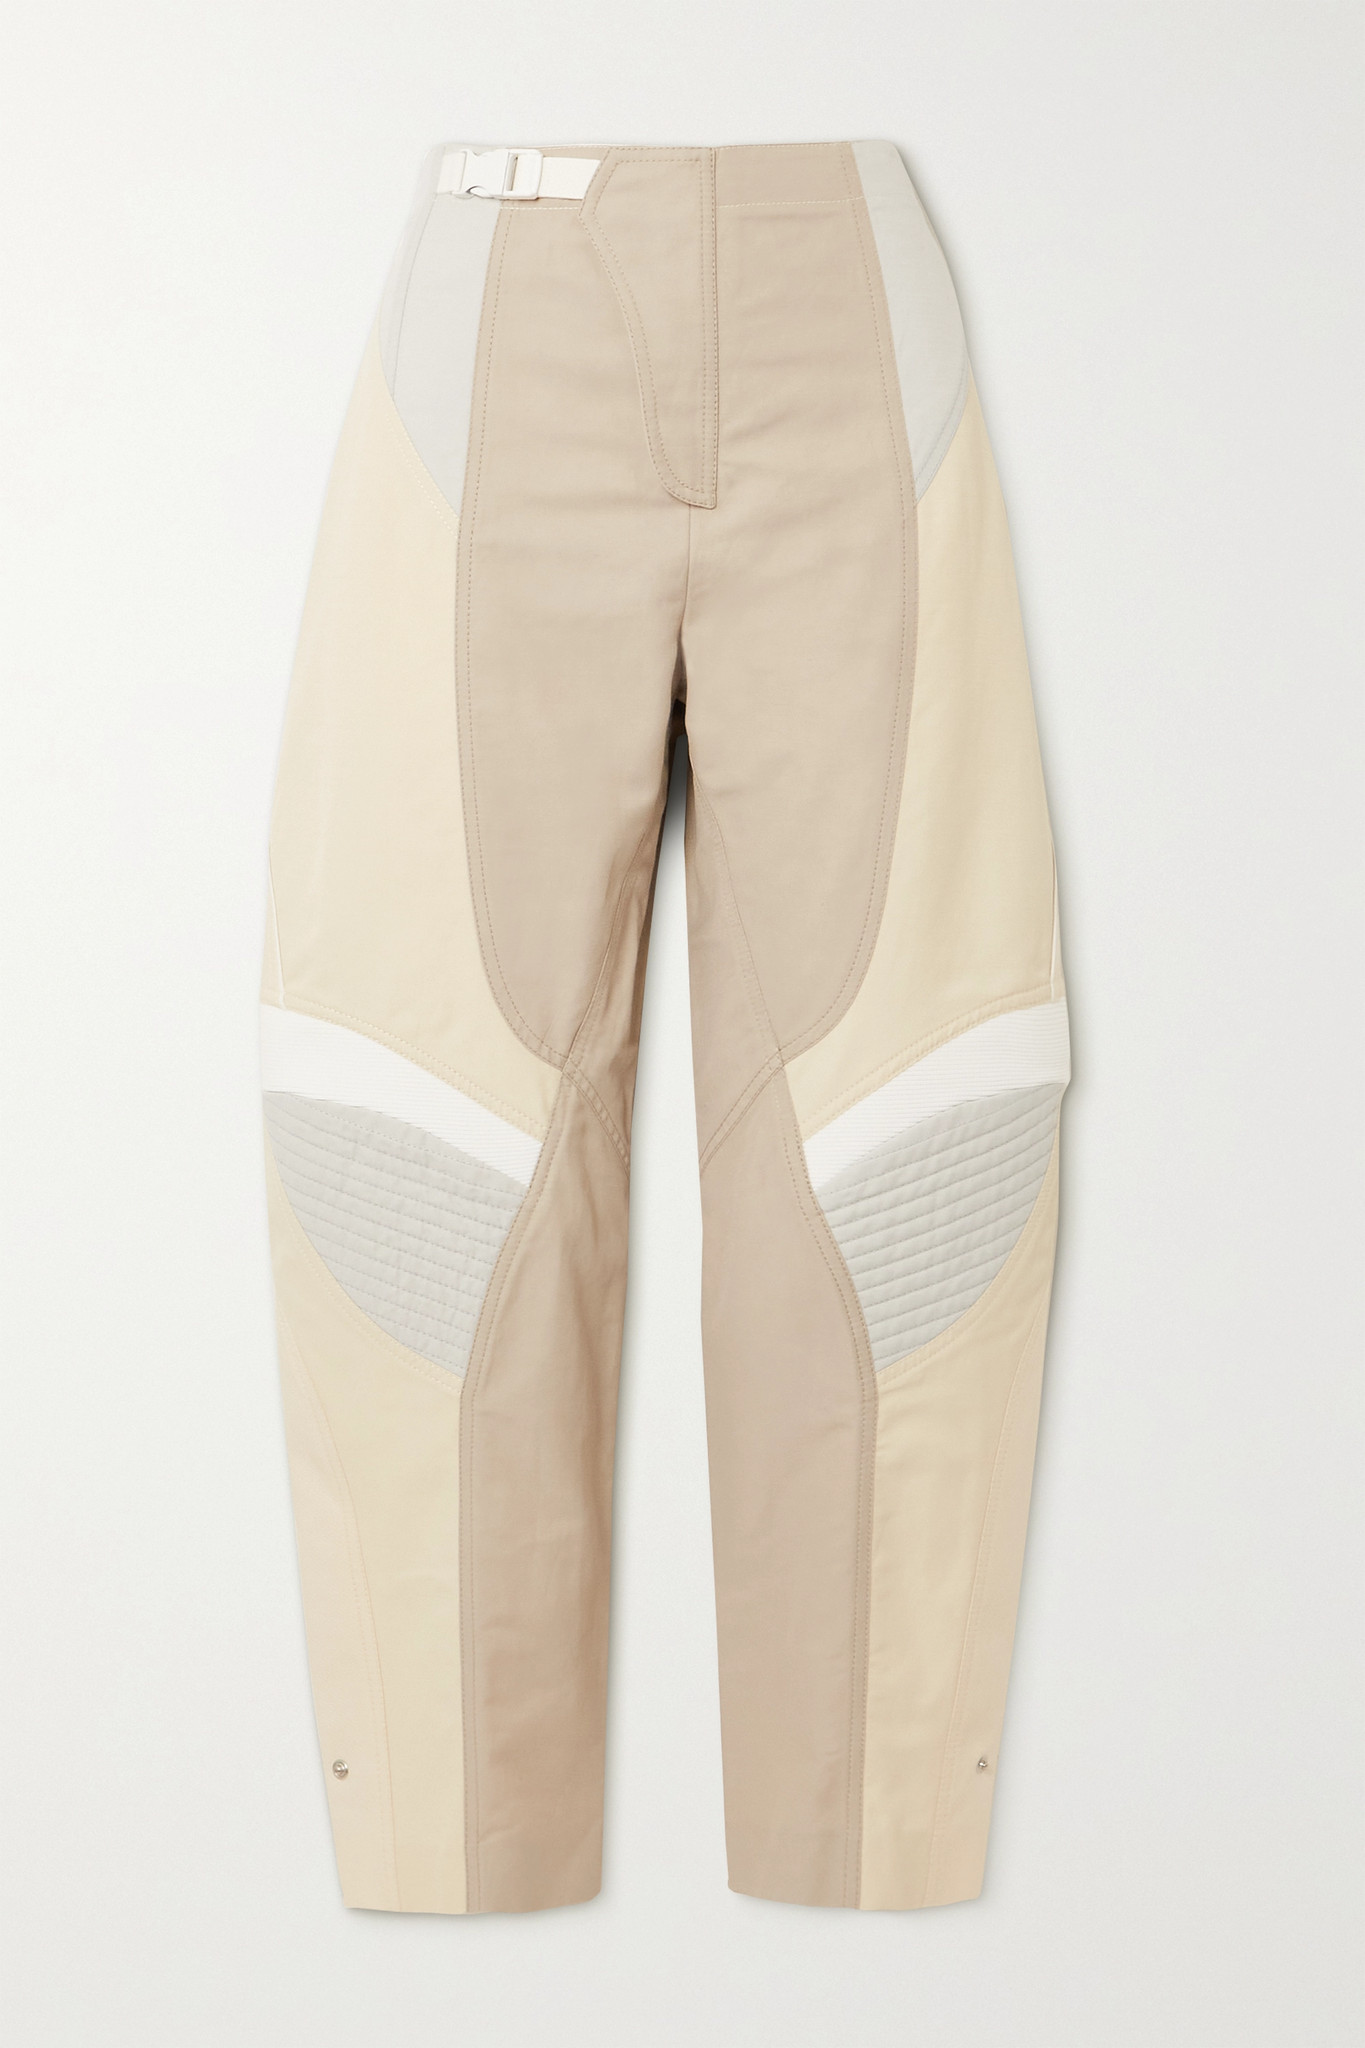 STELLA MCCARTNEY - Brooke Color-block Paneled Twill Tapered Pants - Neutrals - IT34